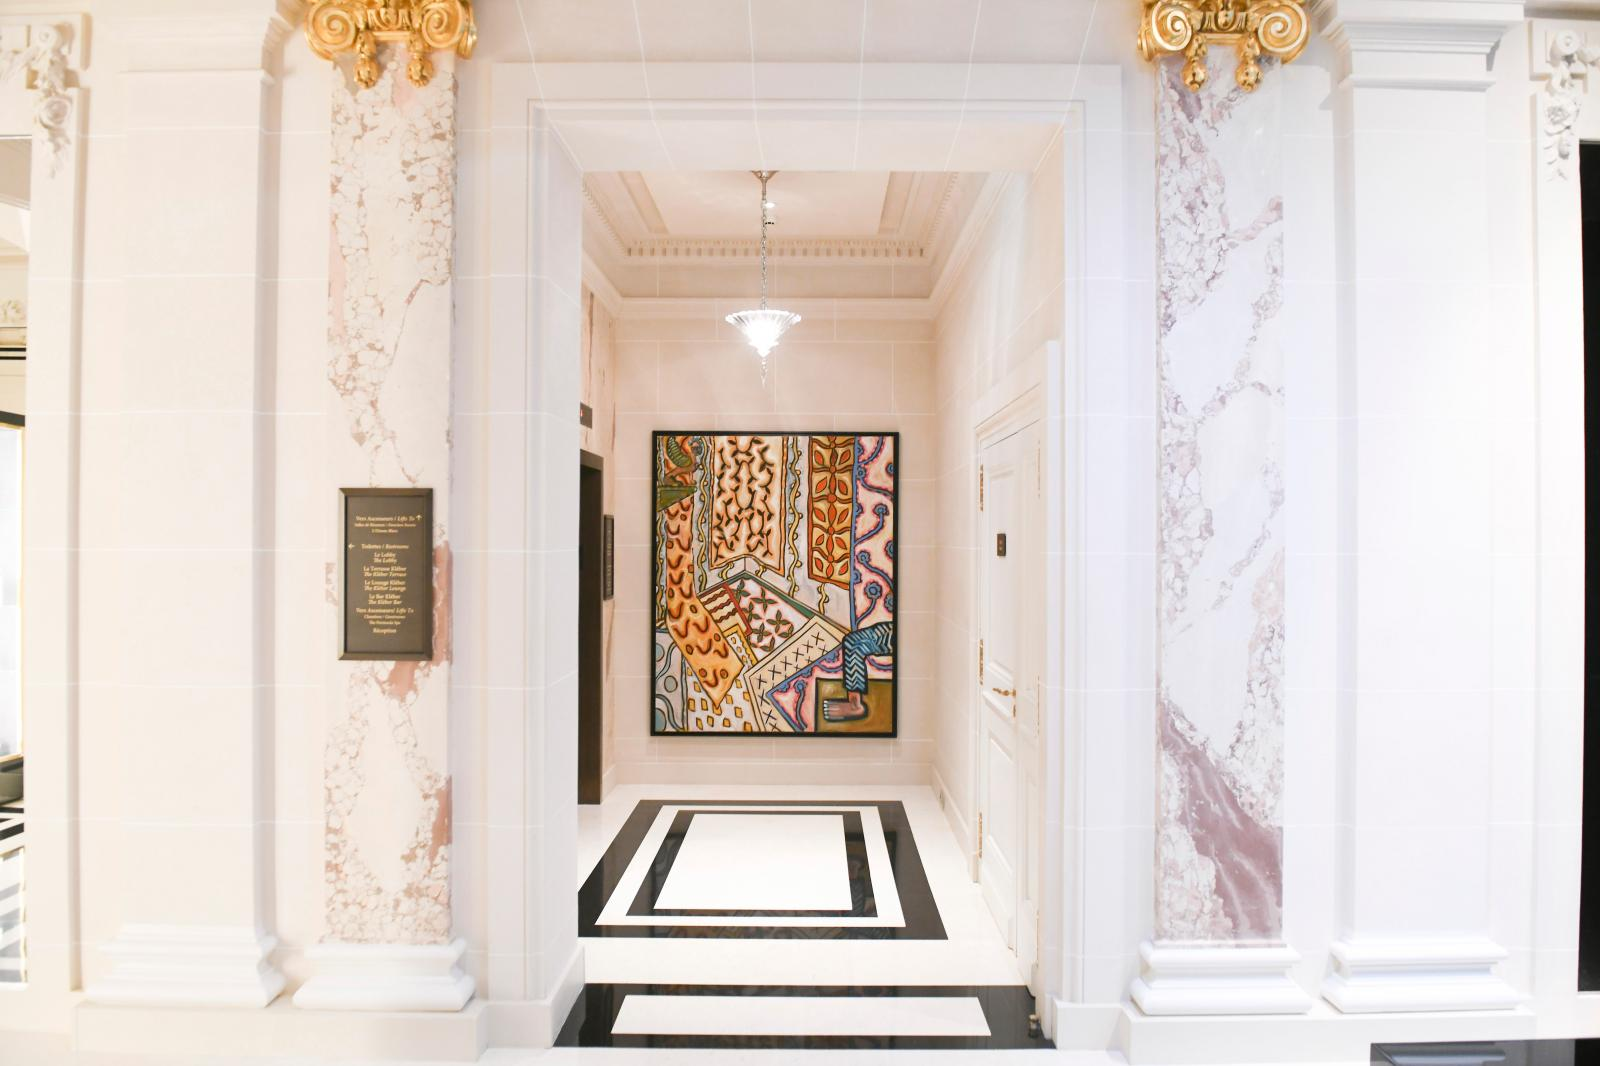 A painting by Marco del Re hung in a corridor of the Peninsula by gallery owner Isabelle Maeght.